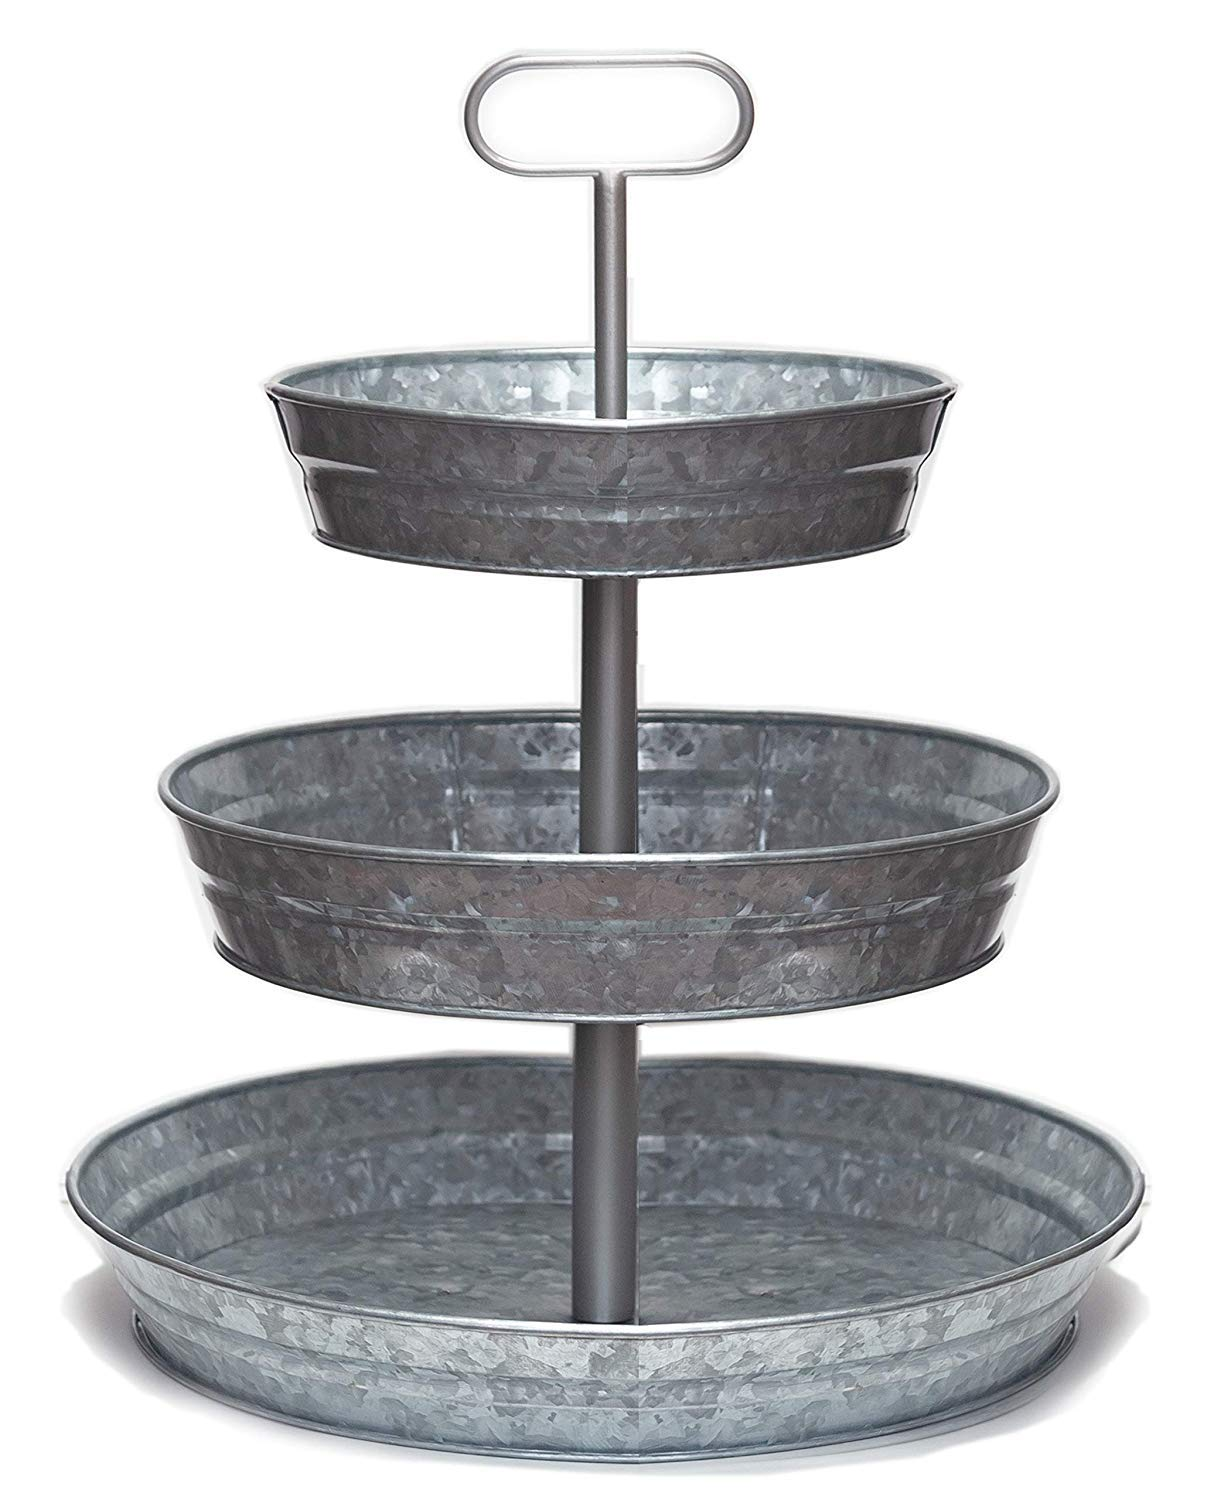 Perfect Tray for Party Rust-Free Metal Tray Cupcake and More 3 Tiered Galvanized Tray by Rural HandiKraft Fruit Serving Tray with Sturdy Metal Handcrafted Tray with Premium Metal Dessert